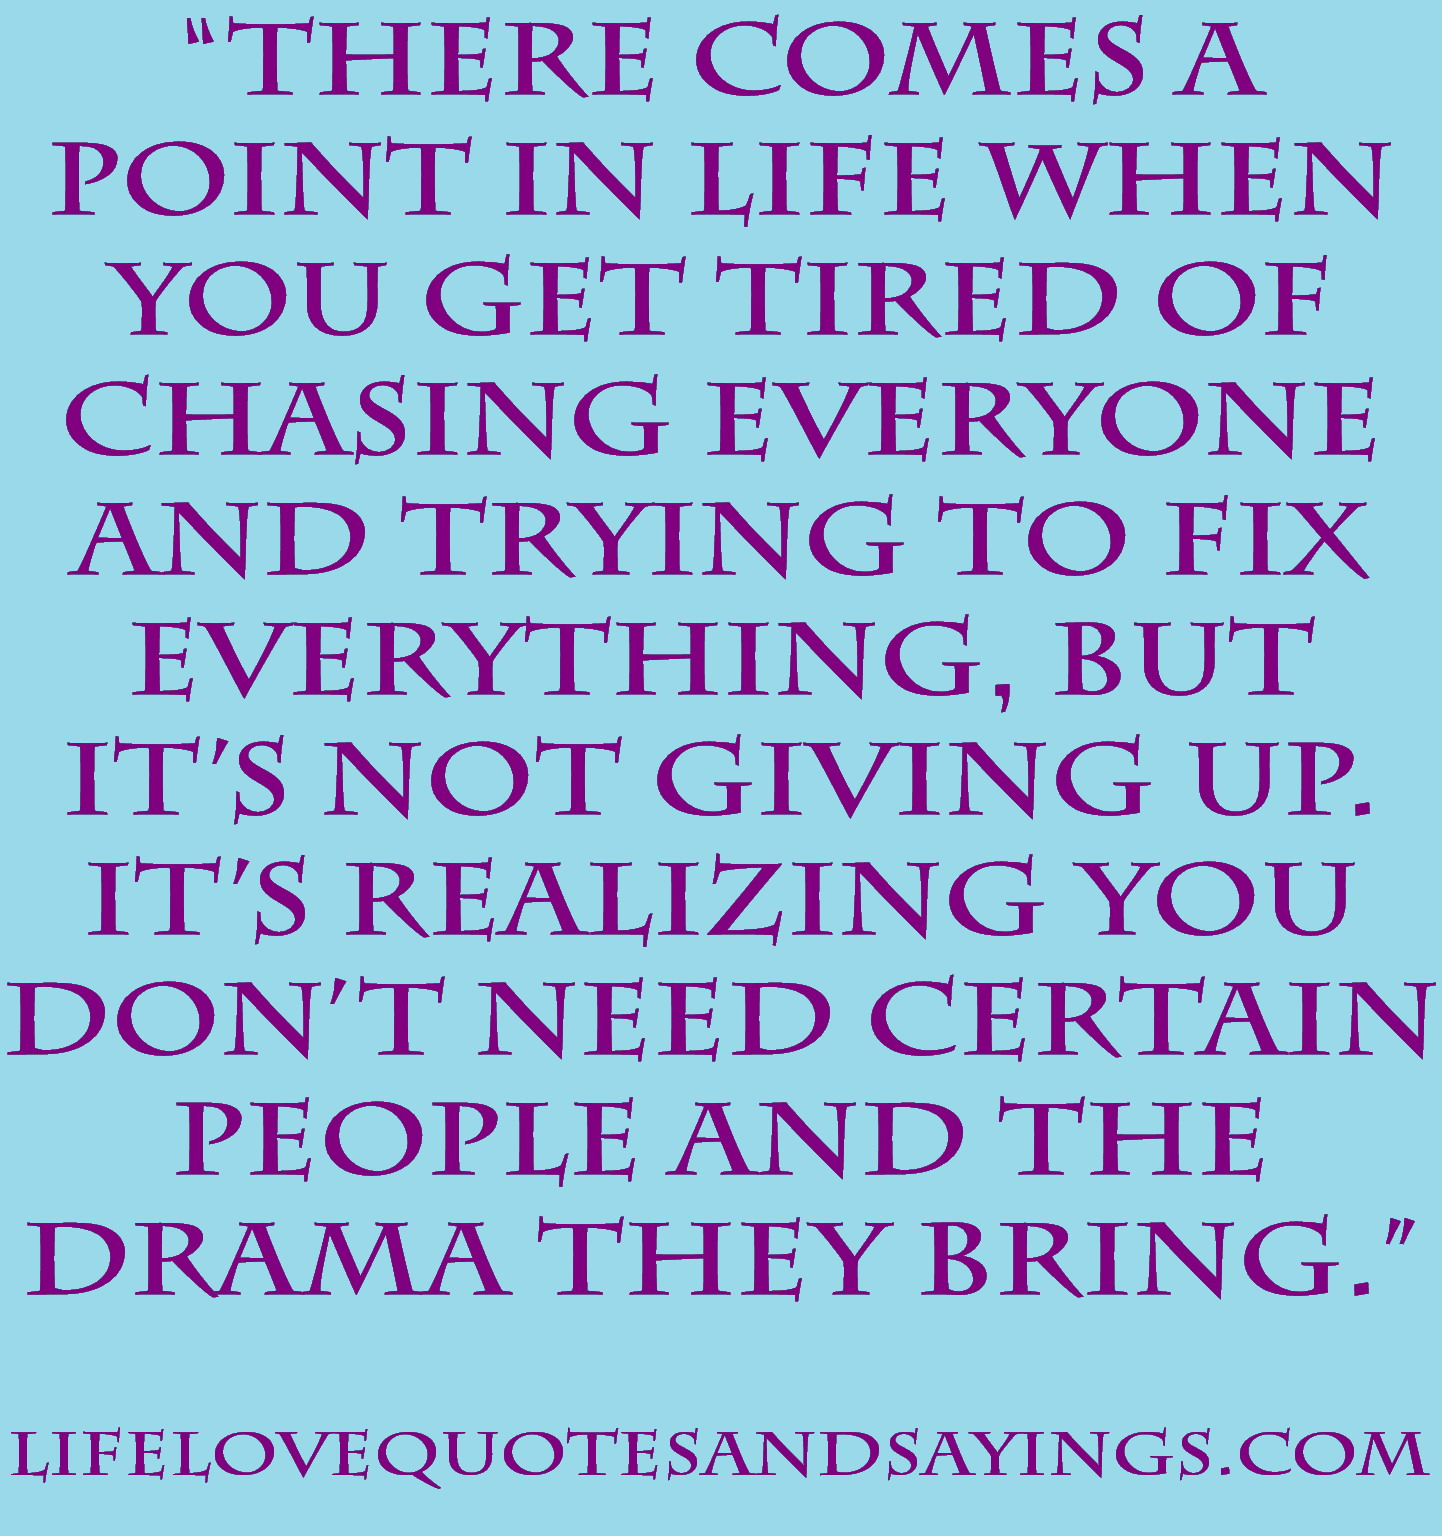 Life Sayings And Quotes Pictures: Tired Of Life Quotes And Sayings. QuotesGram